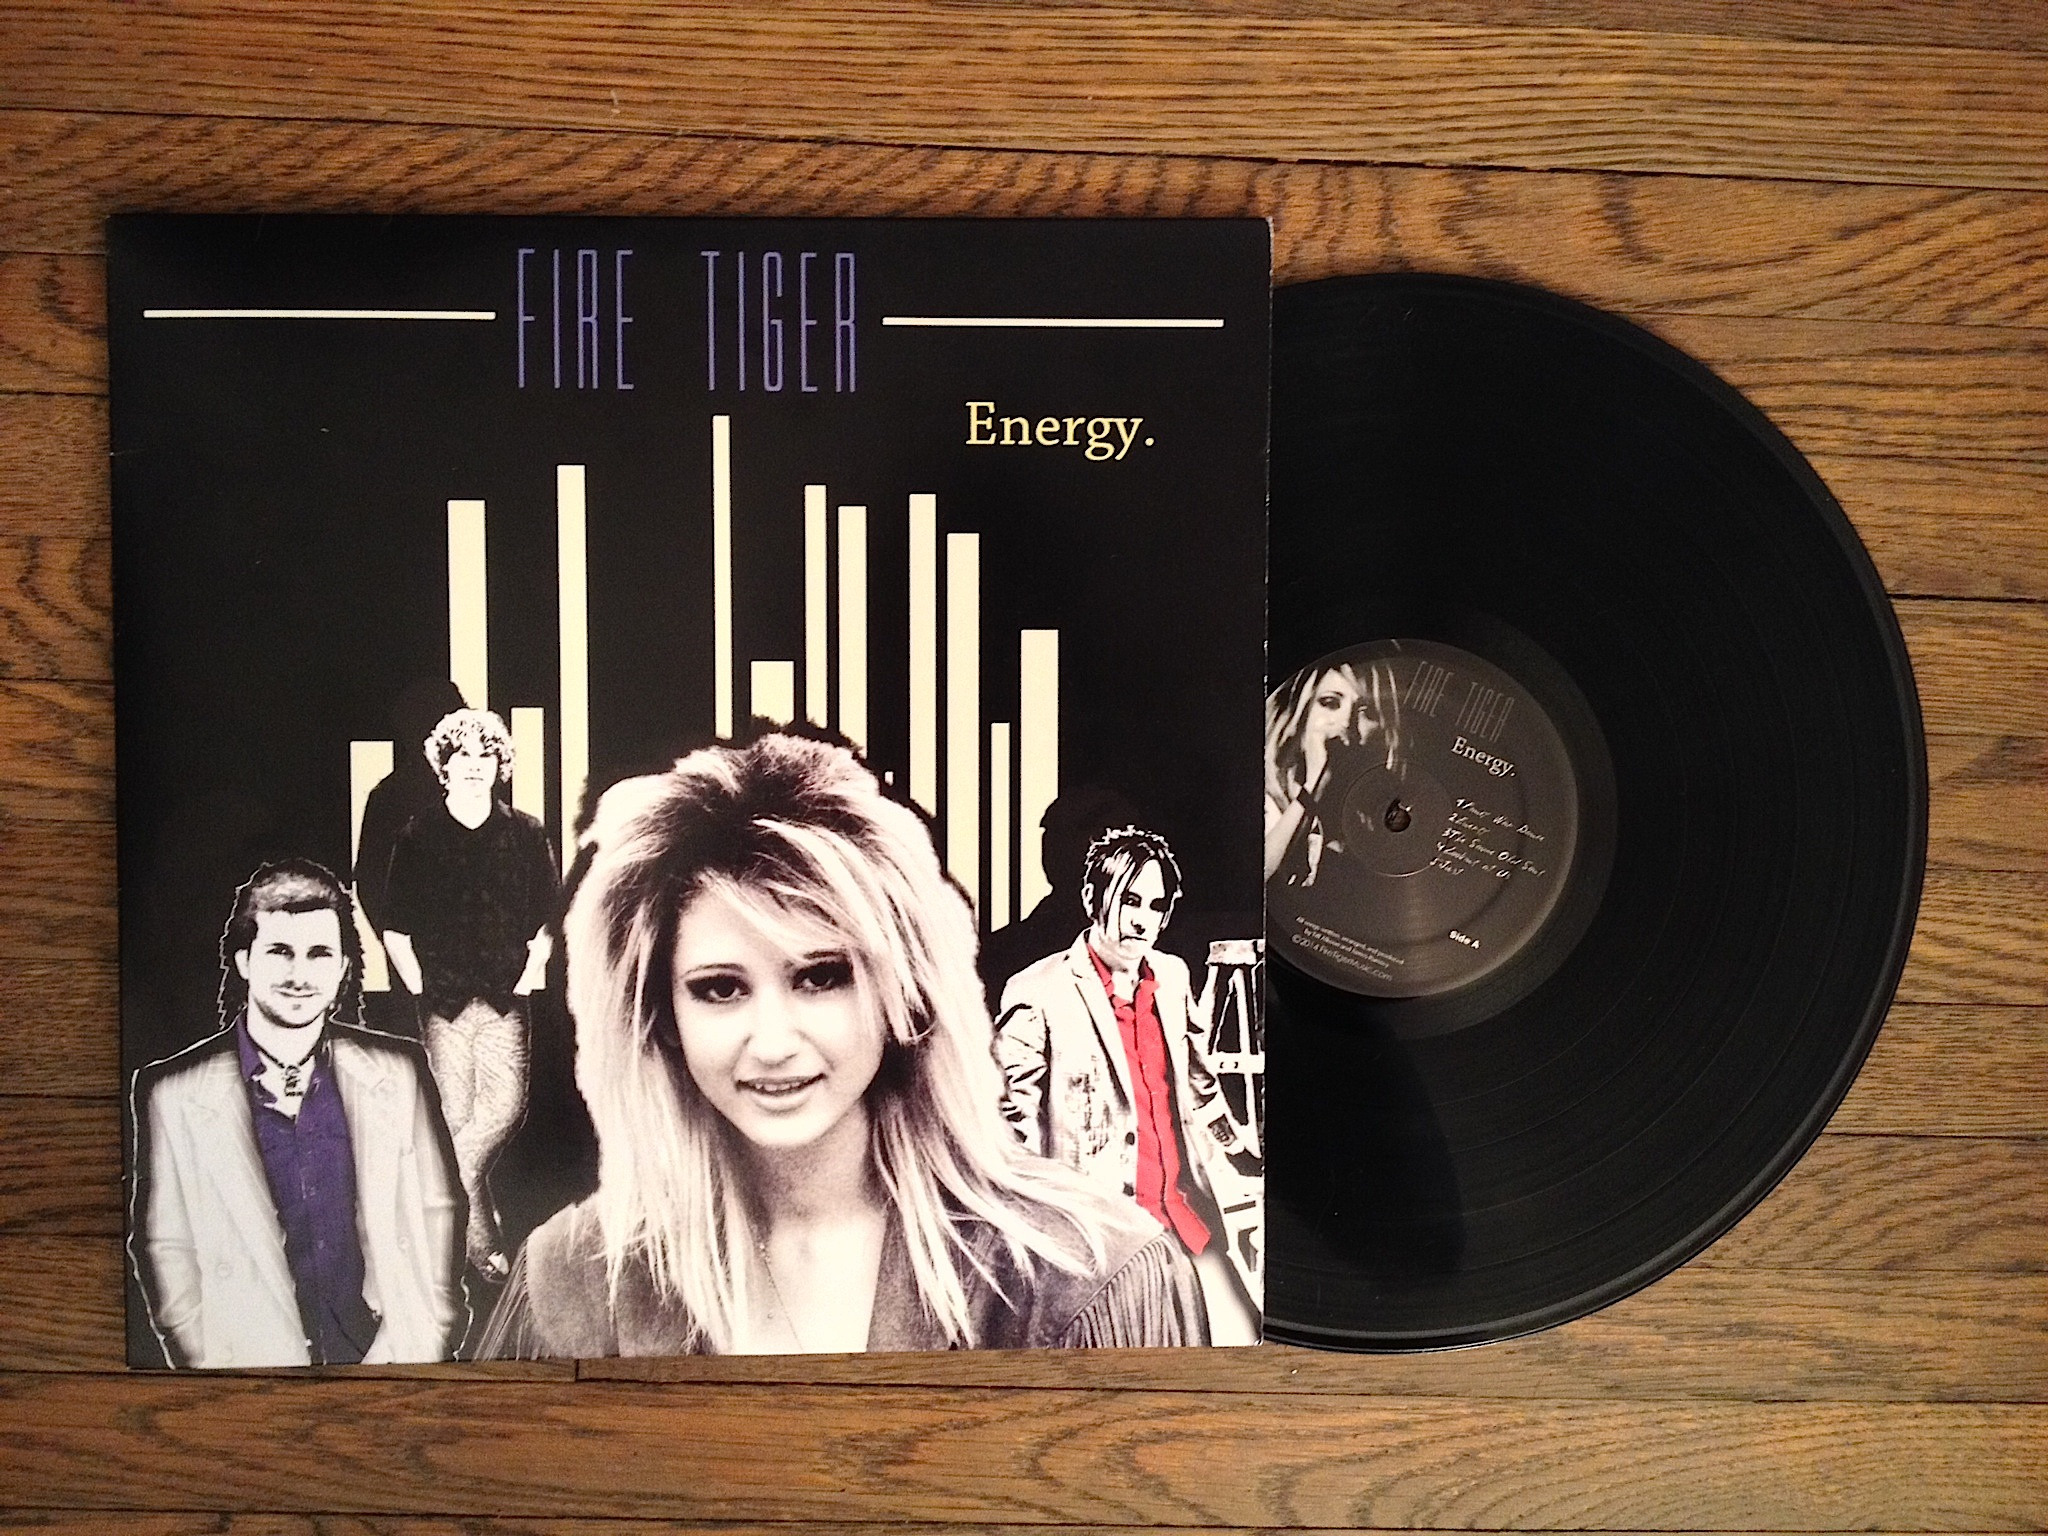 Energy Album - Vinyl Record